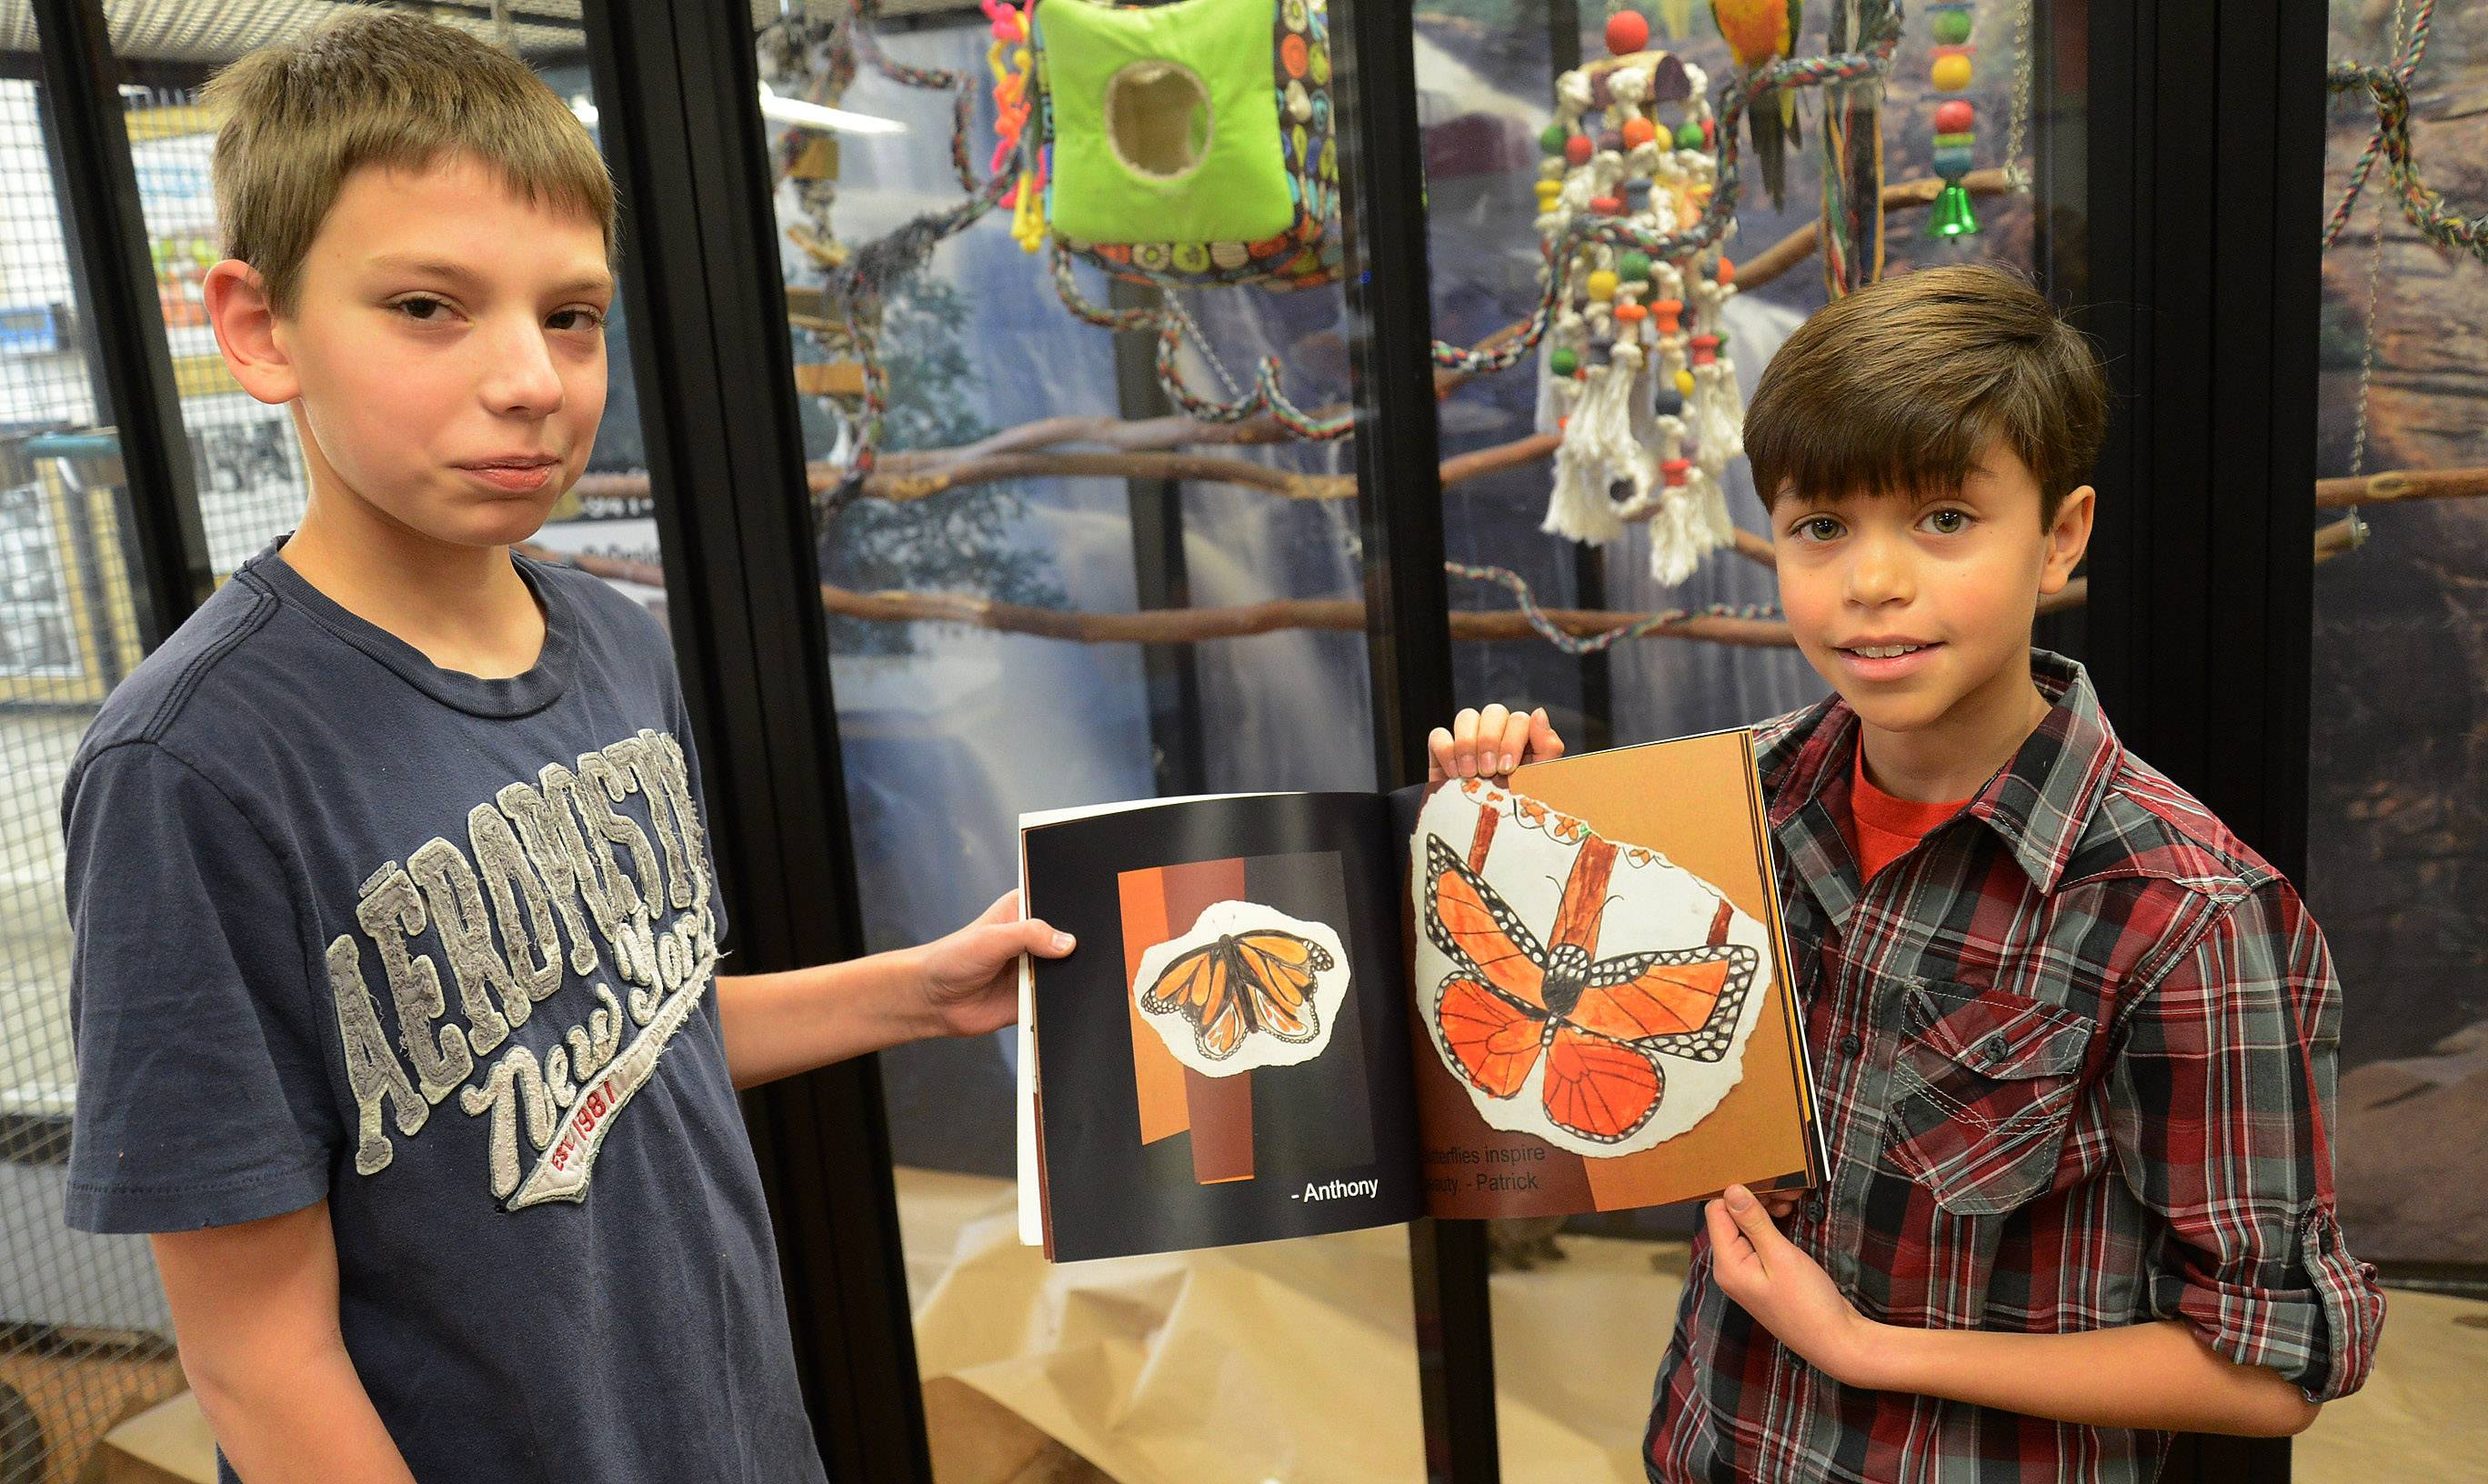 Anthony Folino, left, and Patrick Cadiz show their drawings in the book on monarch butterflies that Kim Savino's classes at Michael Collins Elementary School in Schaumburg has produced.